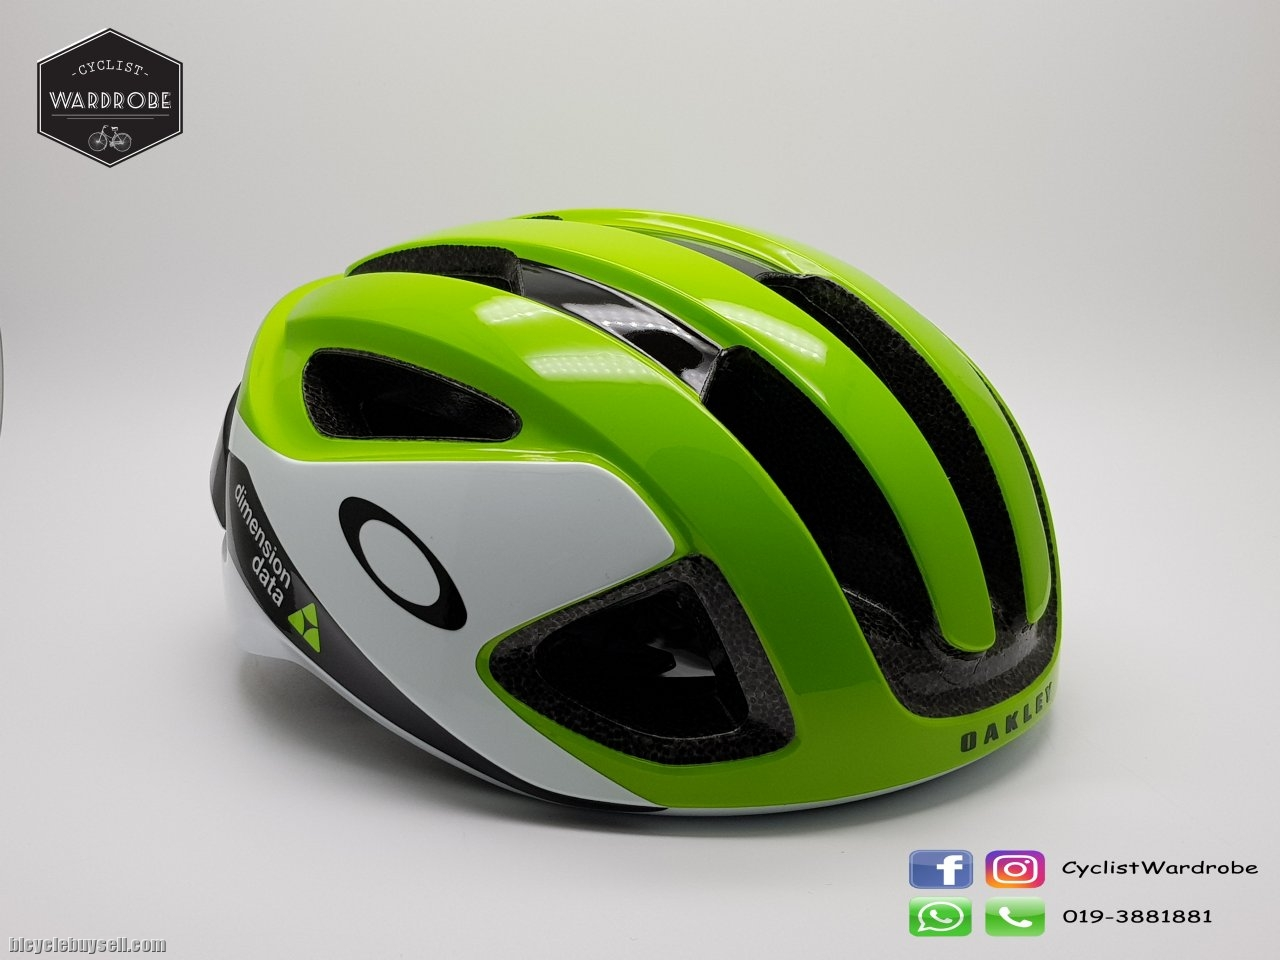 Oakley Aro 3 - Dimension Data (clearence) fde1d4a20a